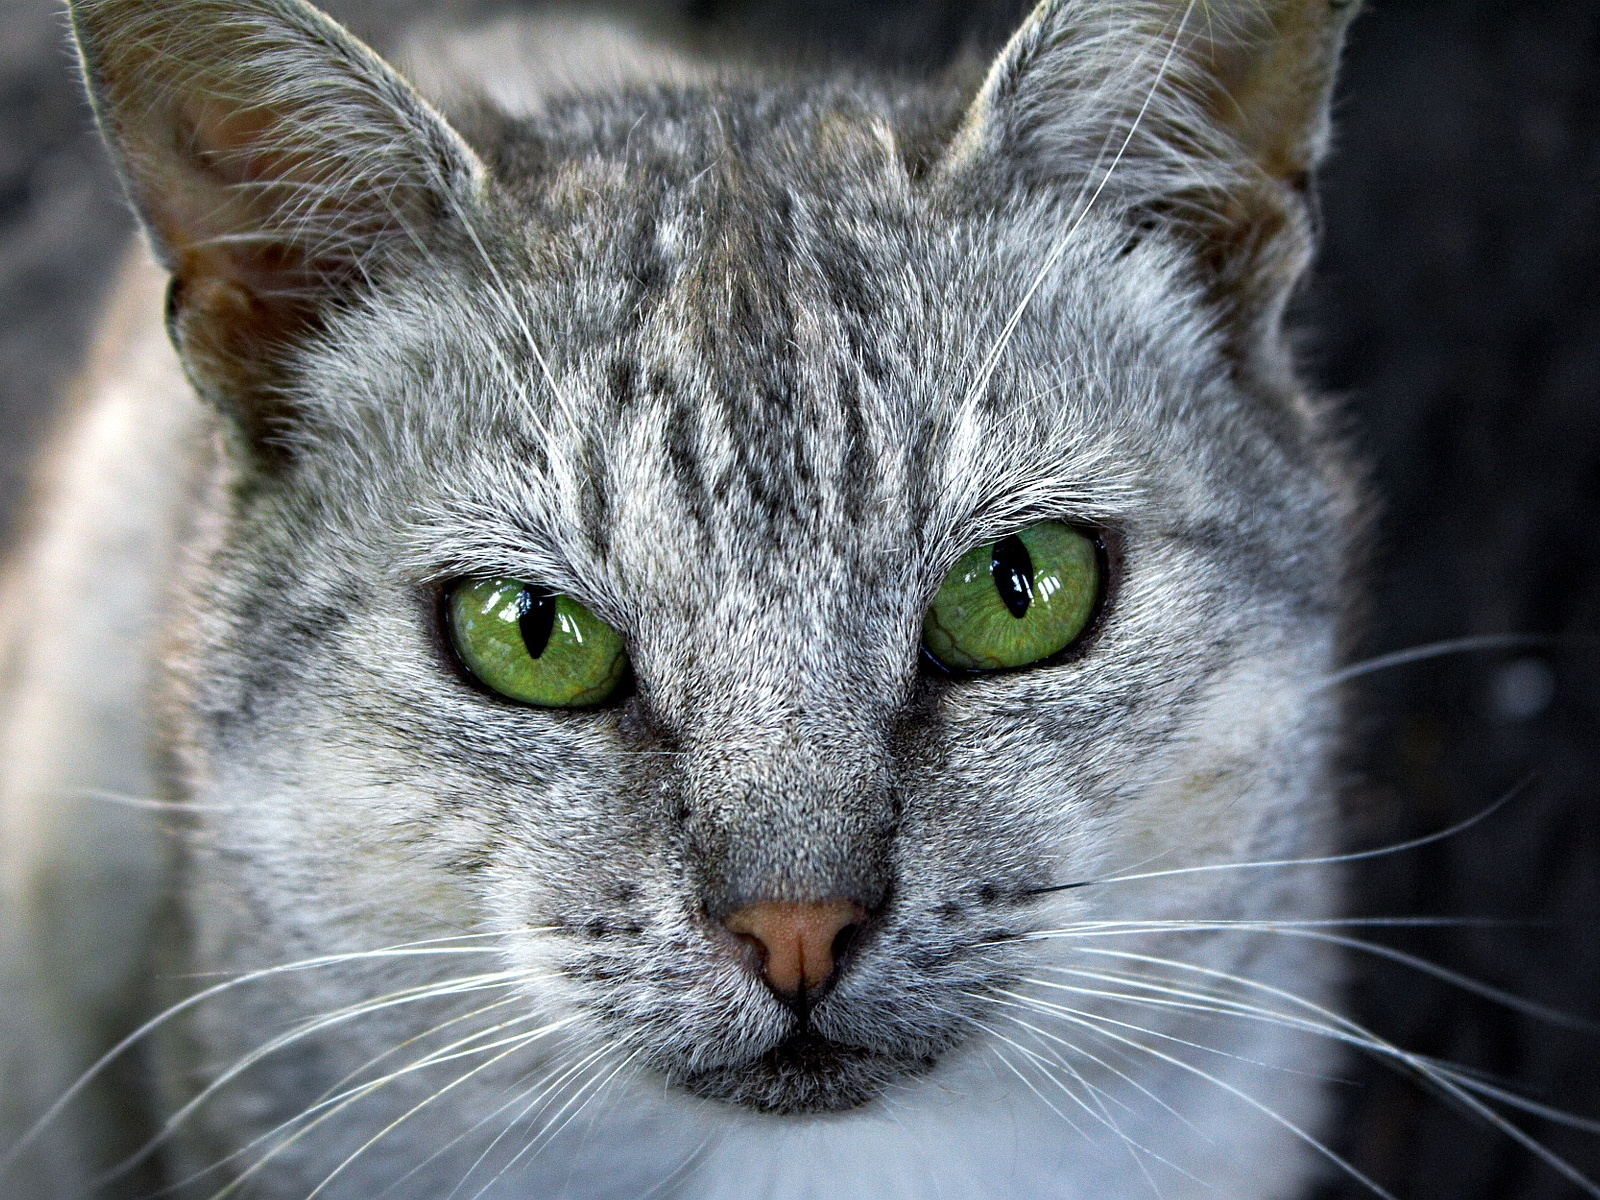 Description: The Wallpaper above is Grey cat green eyes Wallpaper in Resolution 1600x1200. Choose your Resolution and Download Grey cat green eyes Wallpaper